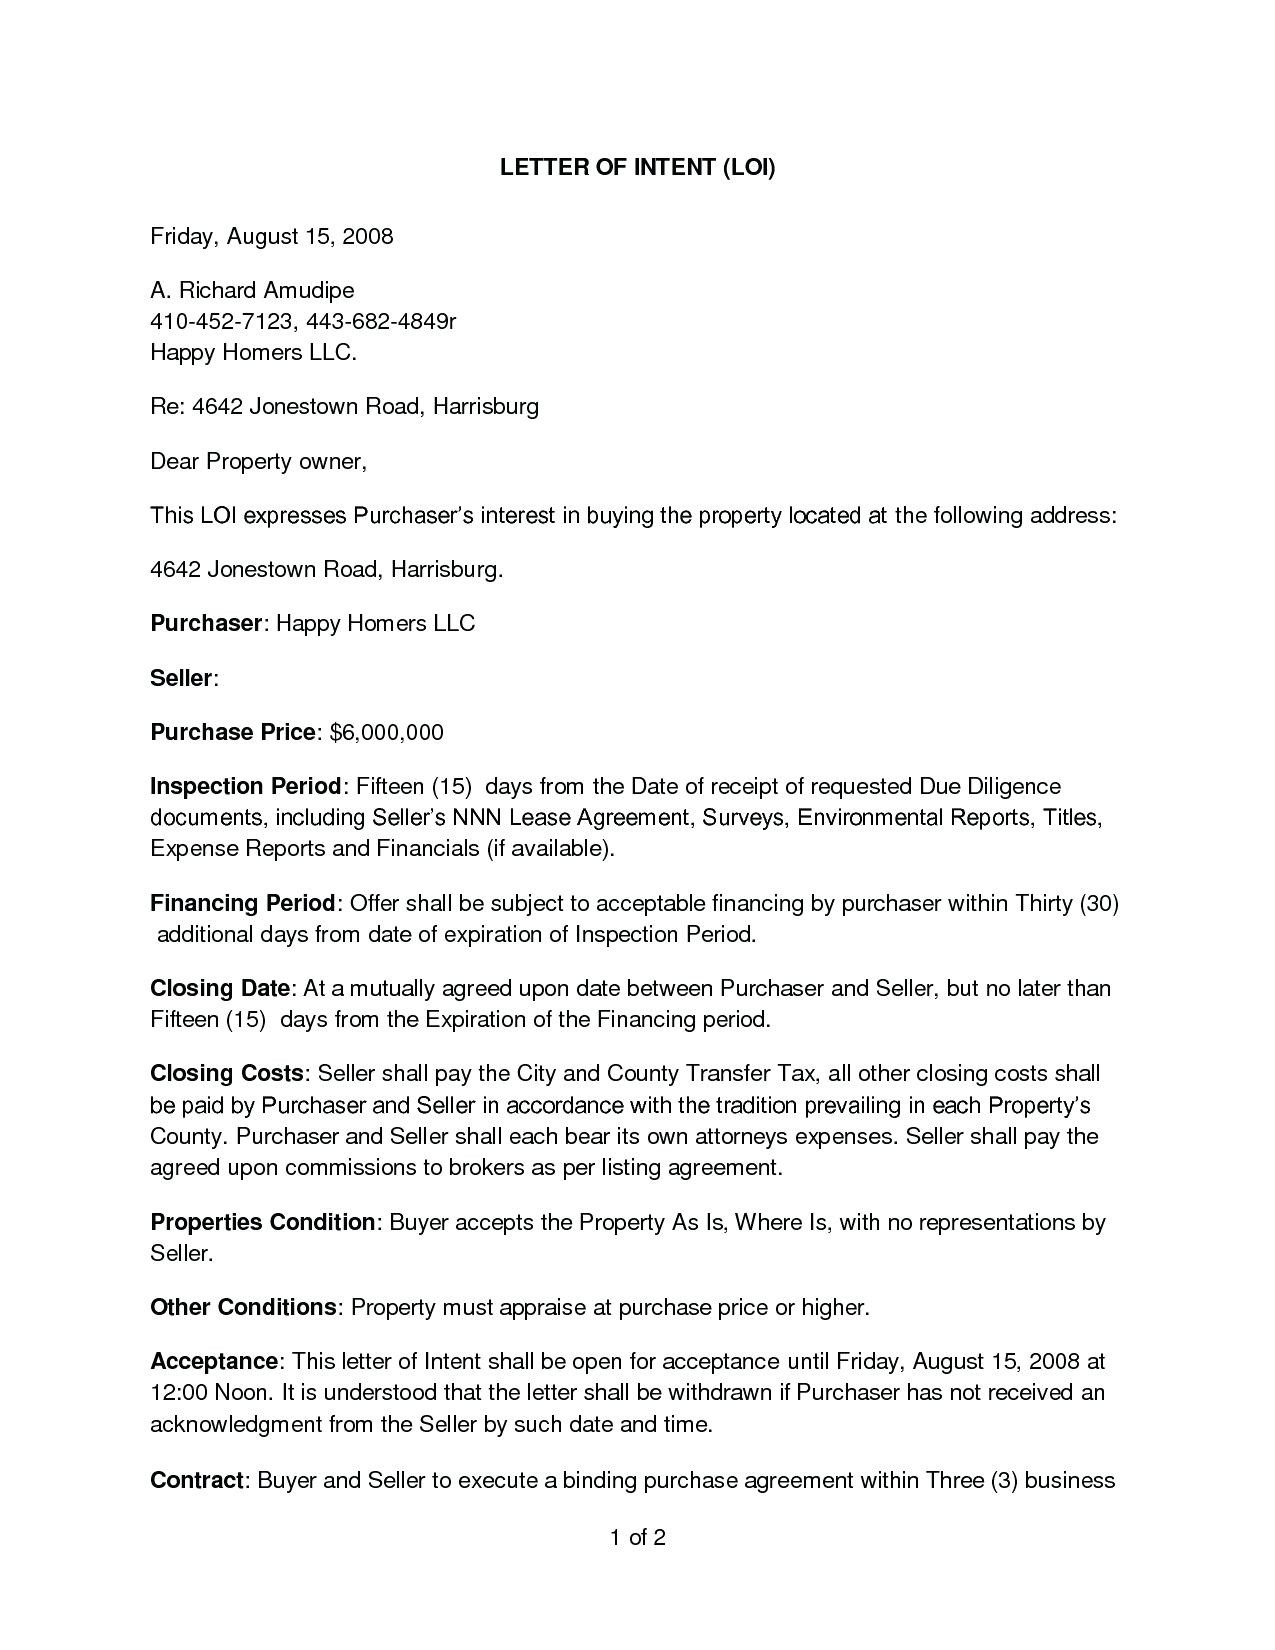 Land Purchase Offer Letter Template - Fer to Purchase Contract Template